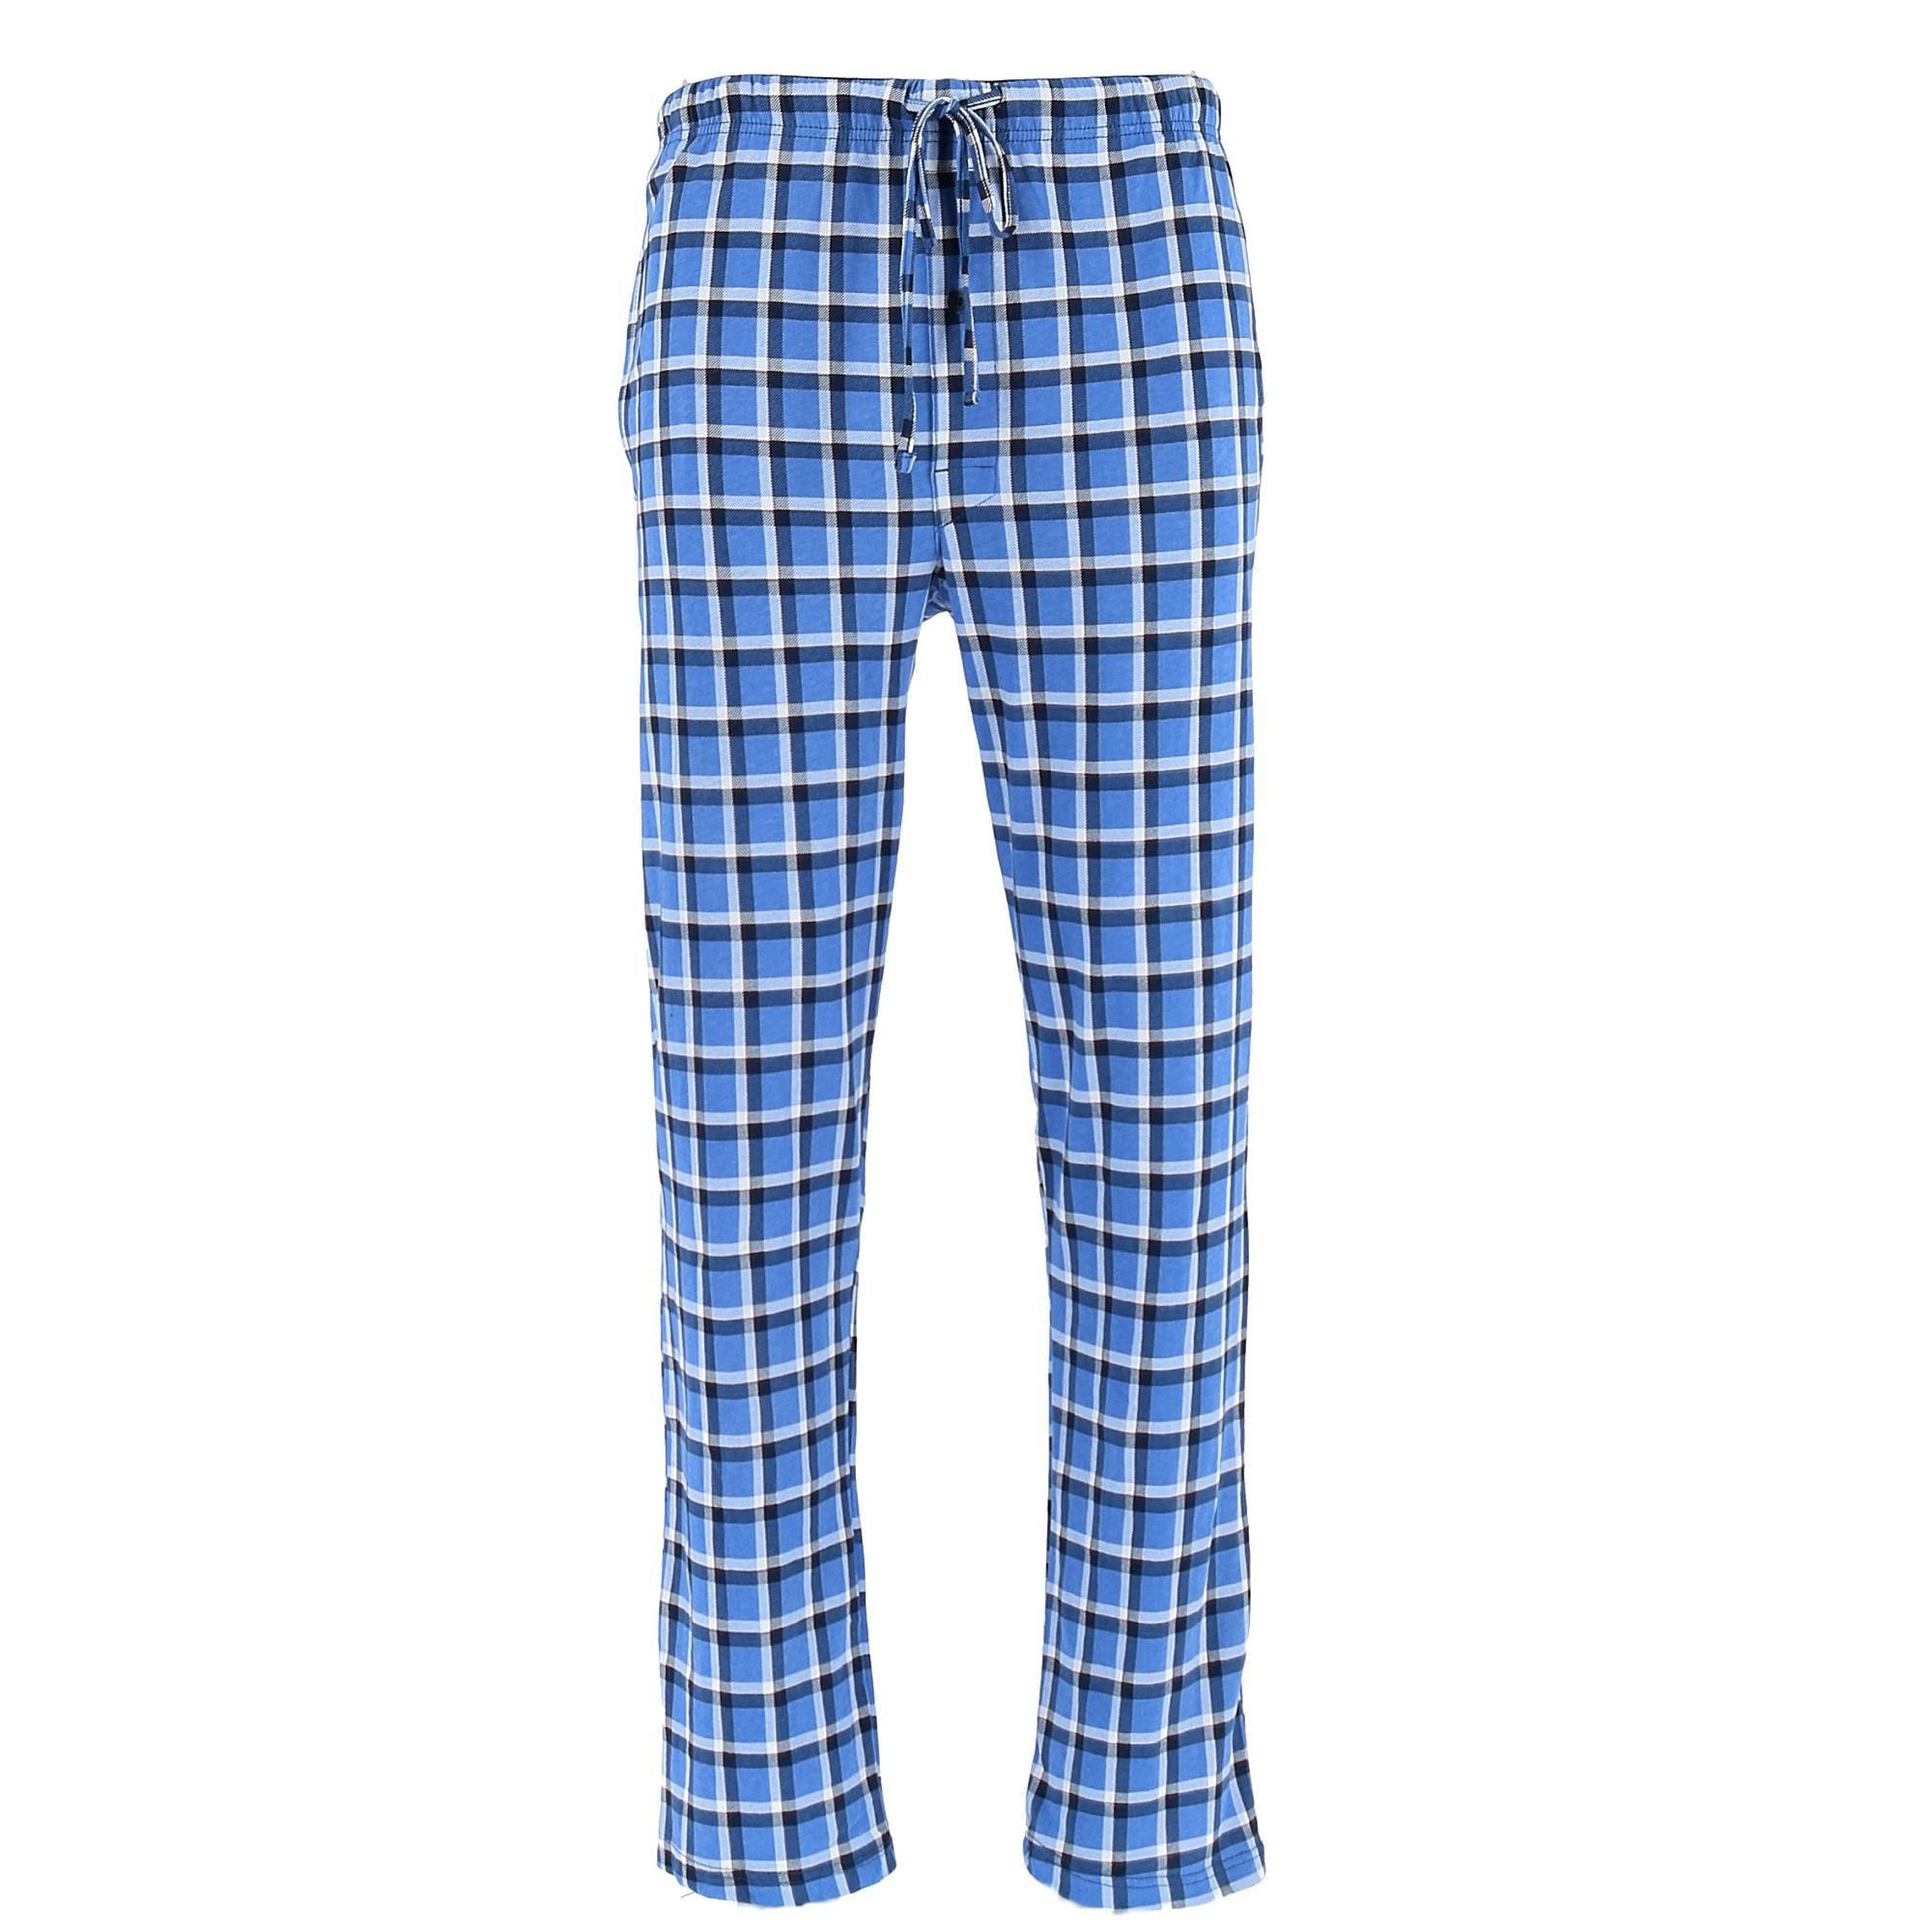 Hanes Mens Mens Printed Knit Pajama Pant Pajama Bottom